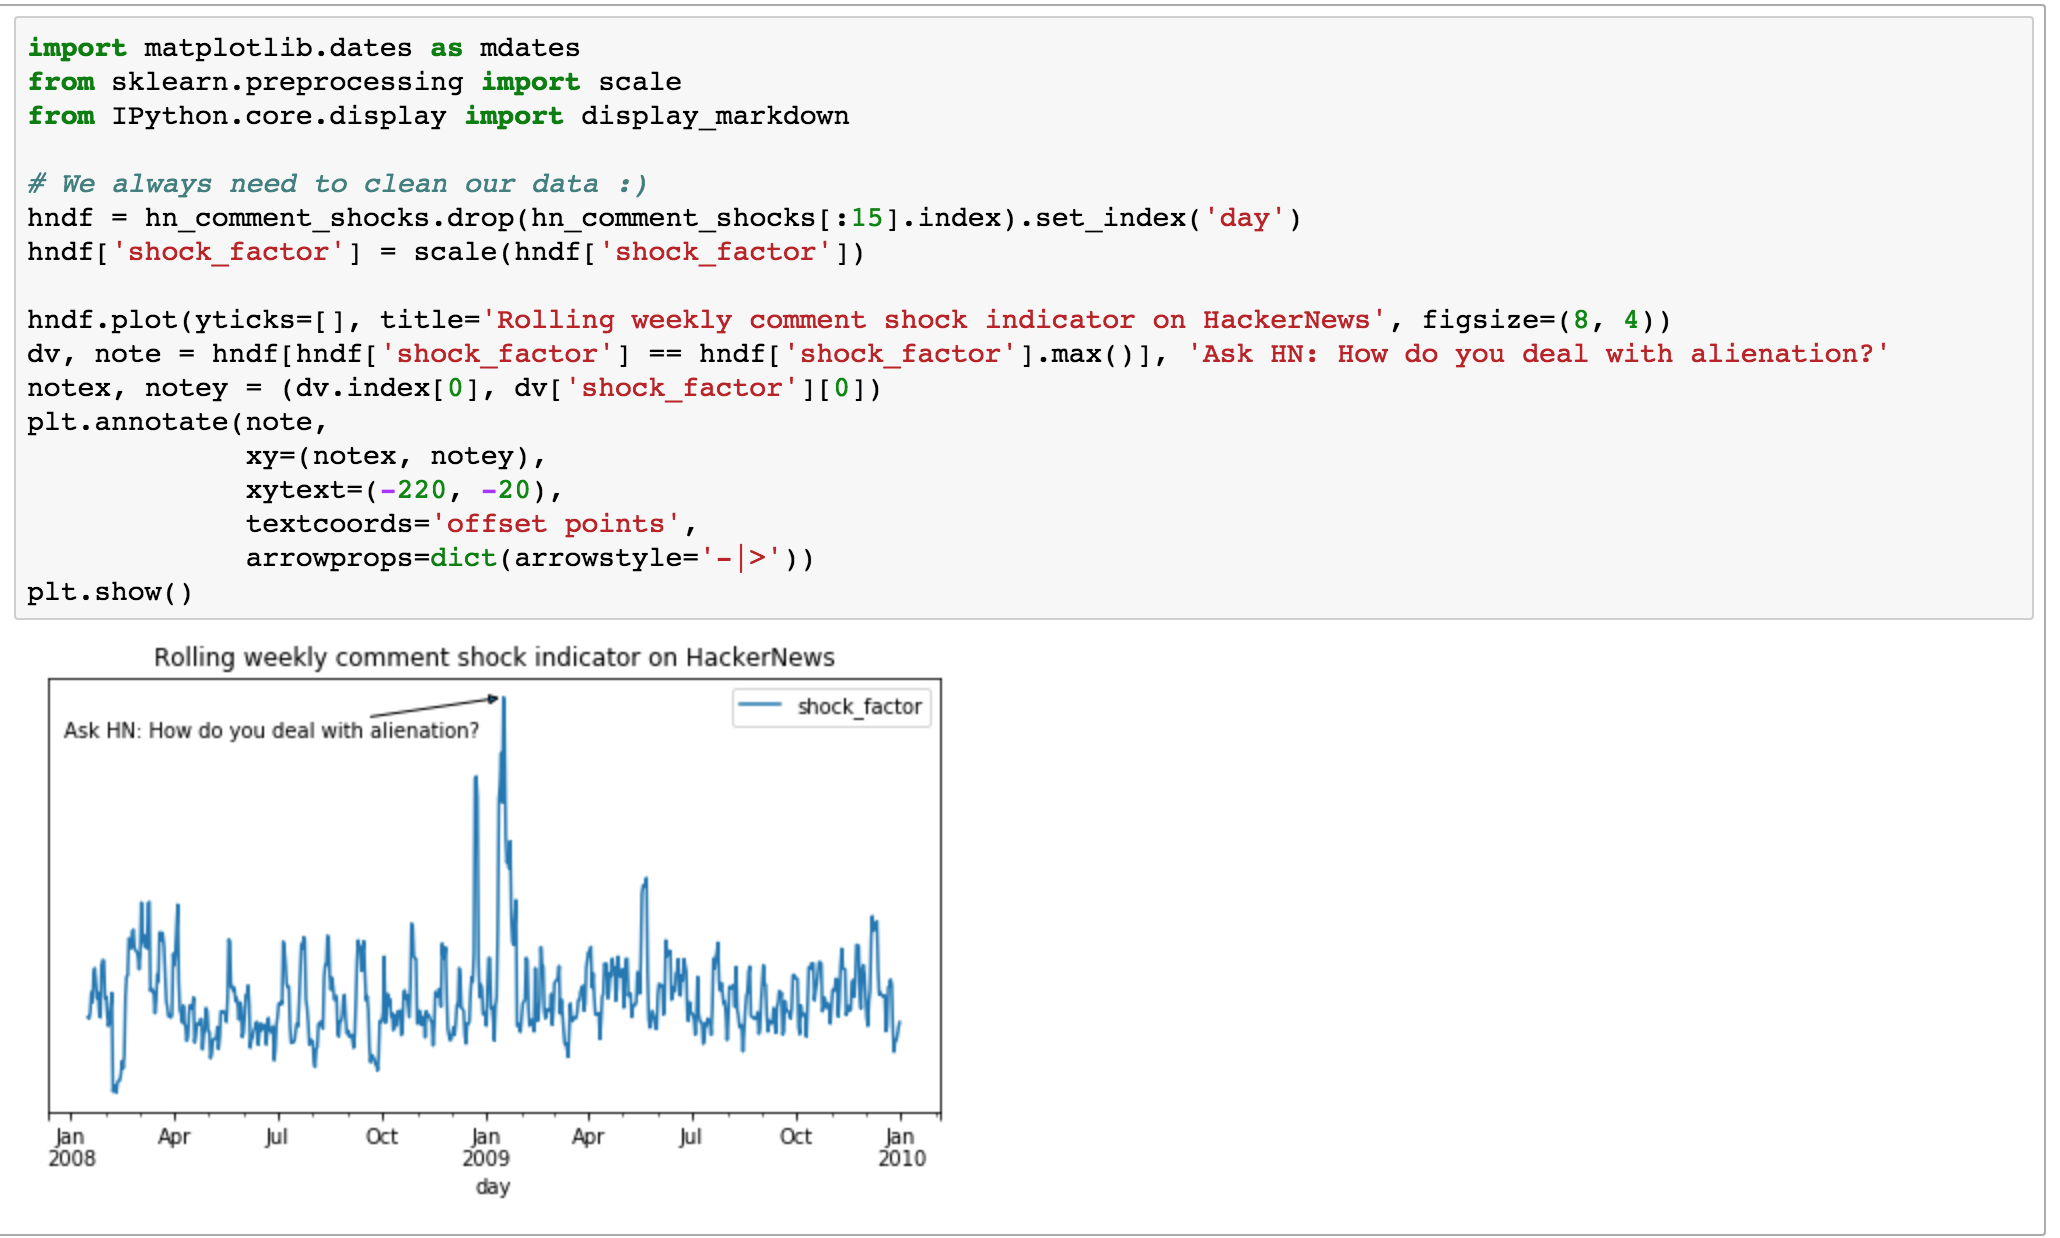 Productive research with custom IPython extensions, part 2